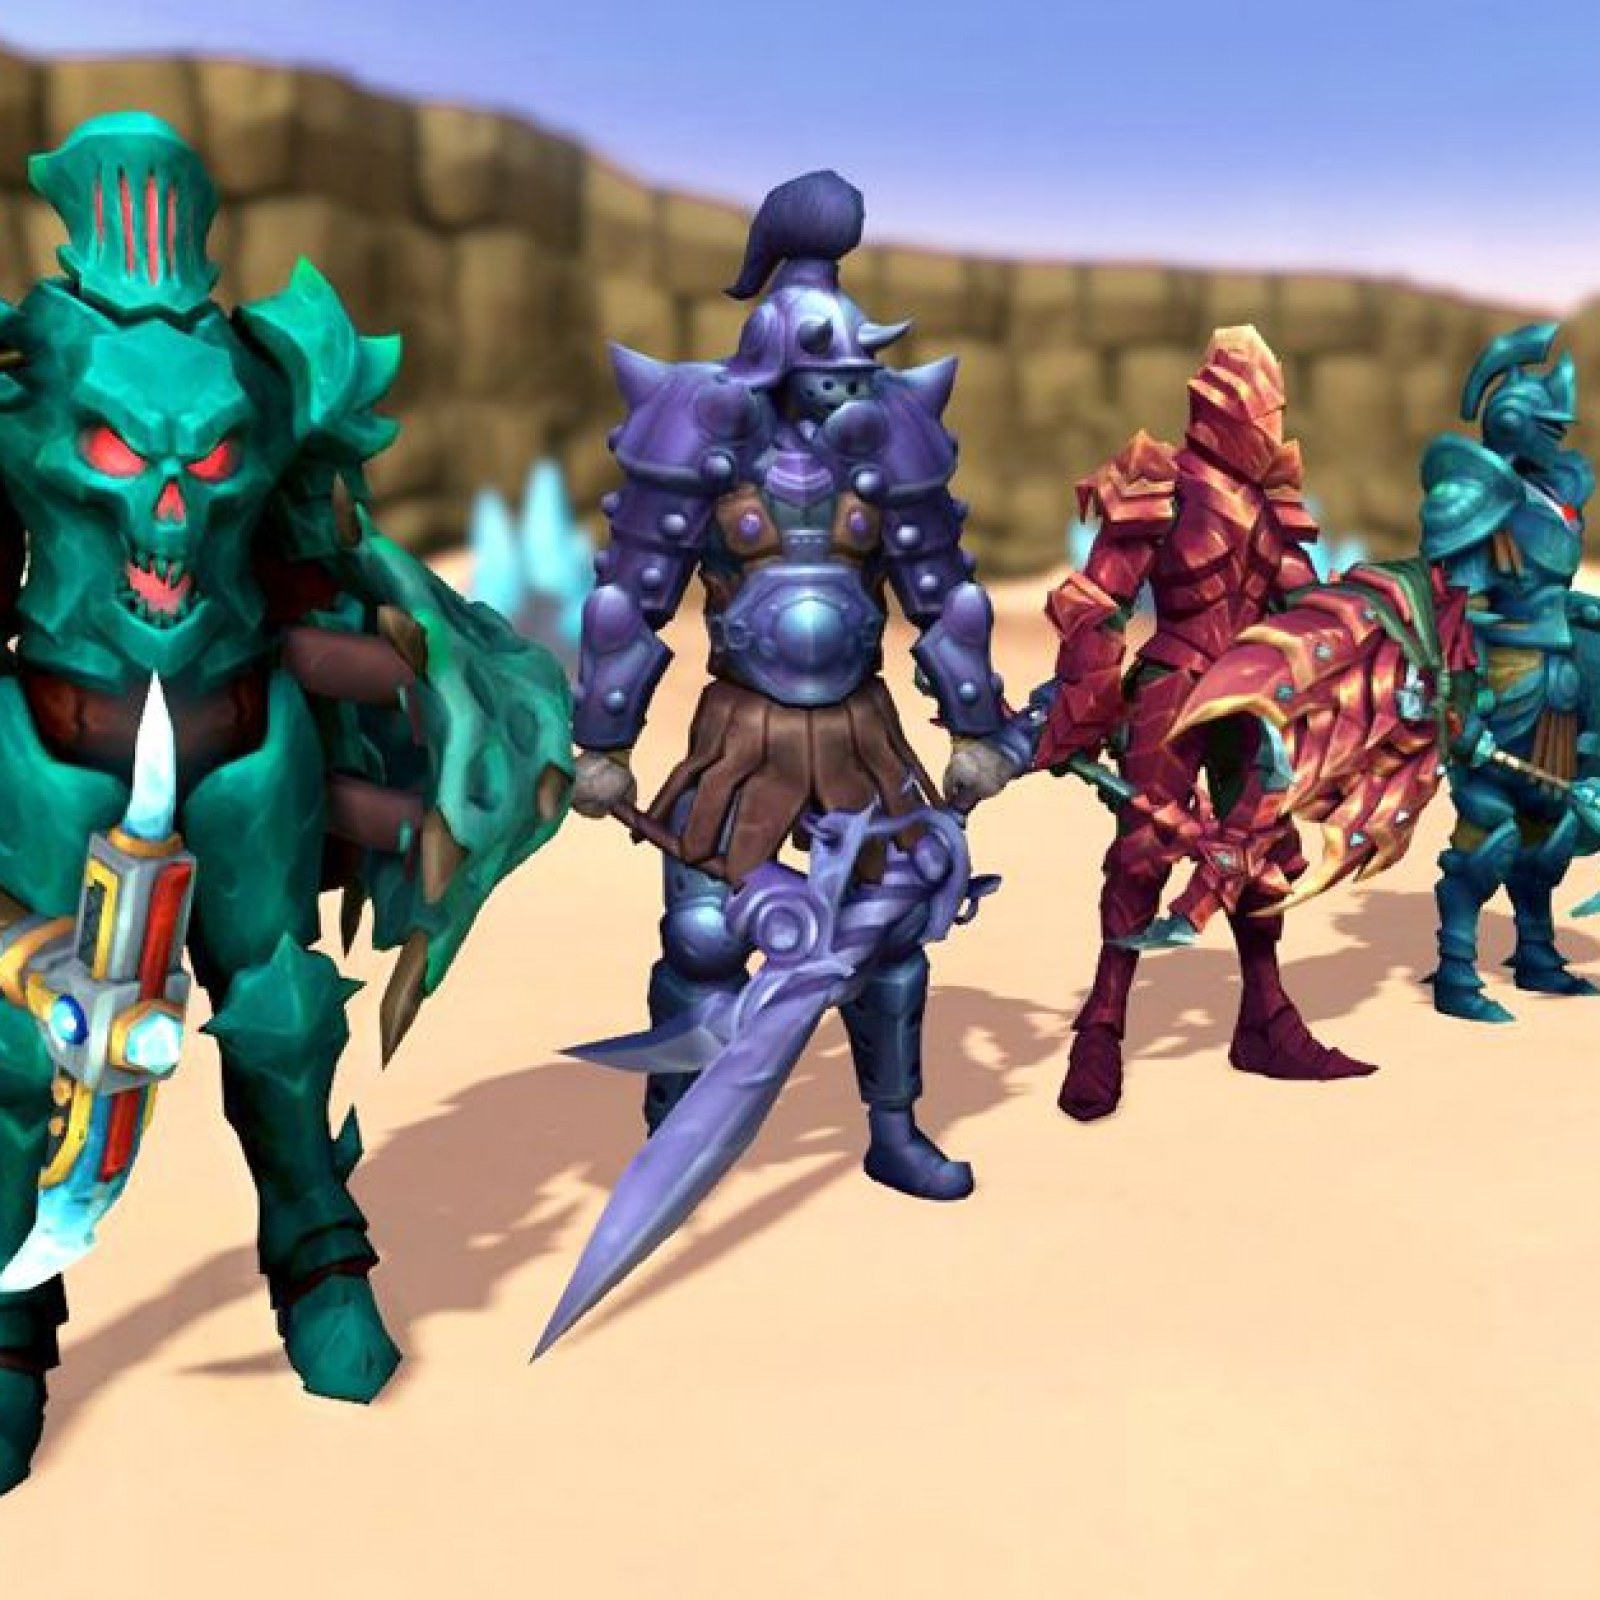 Runescape' Mining and Smithing Rework Update: Get Your Elder